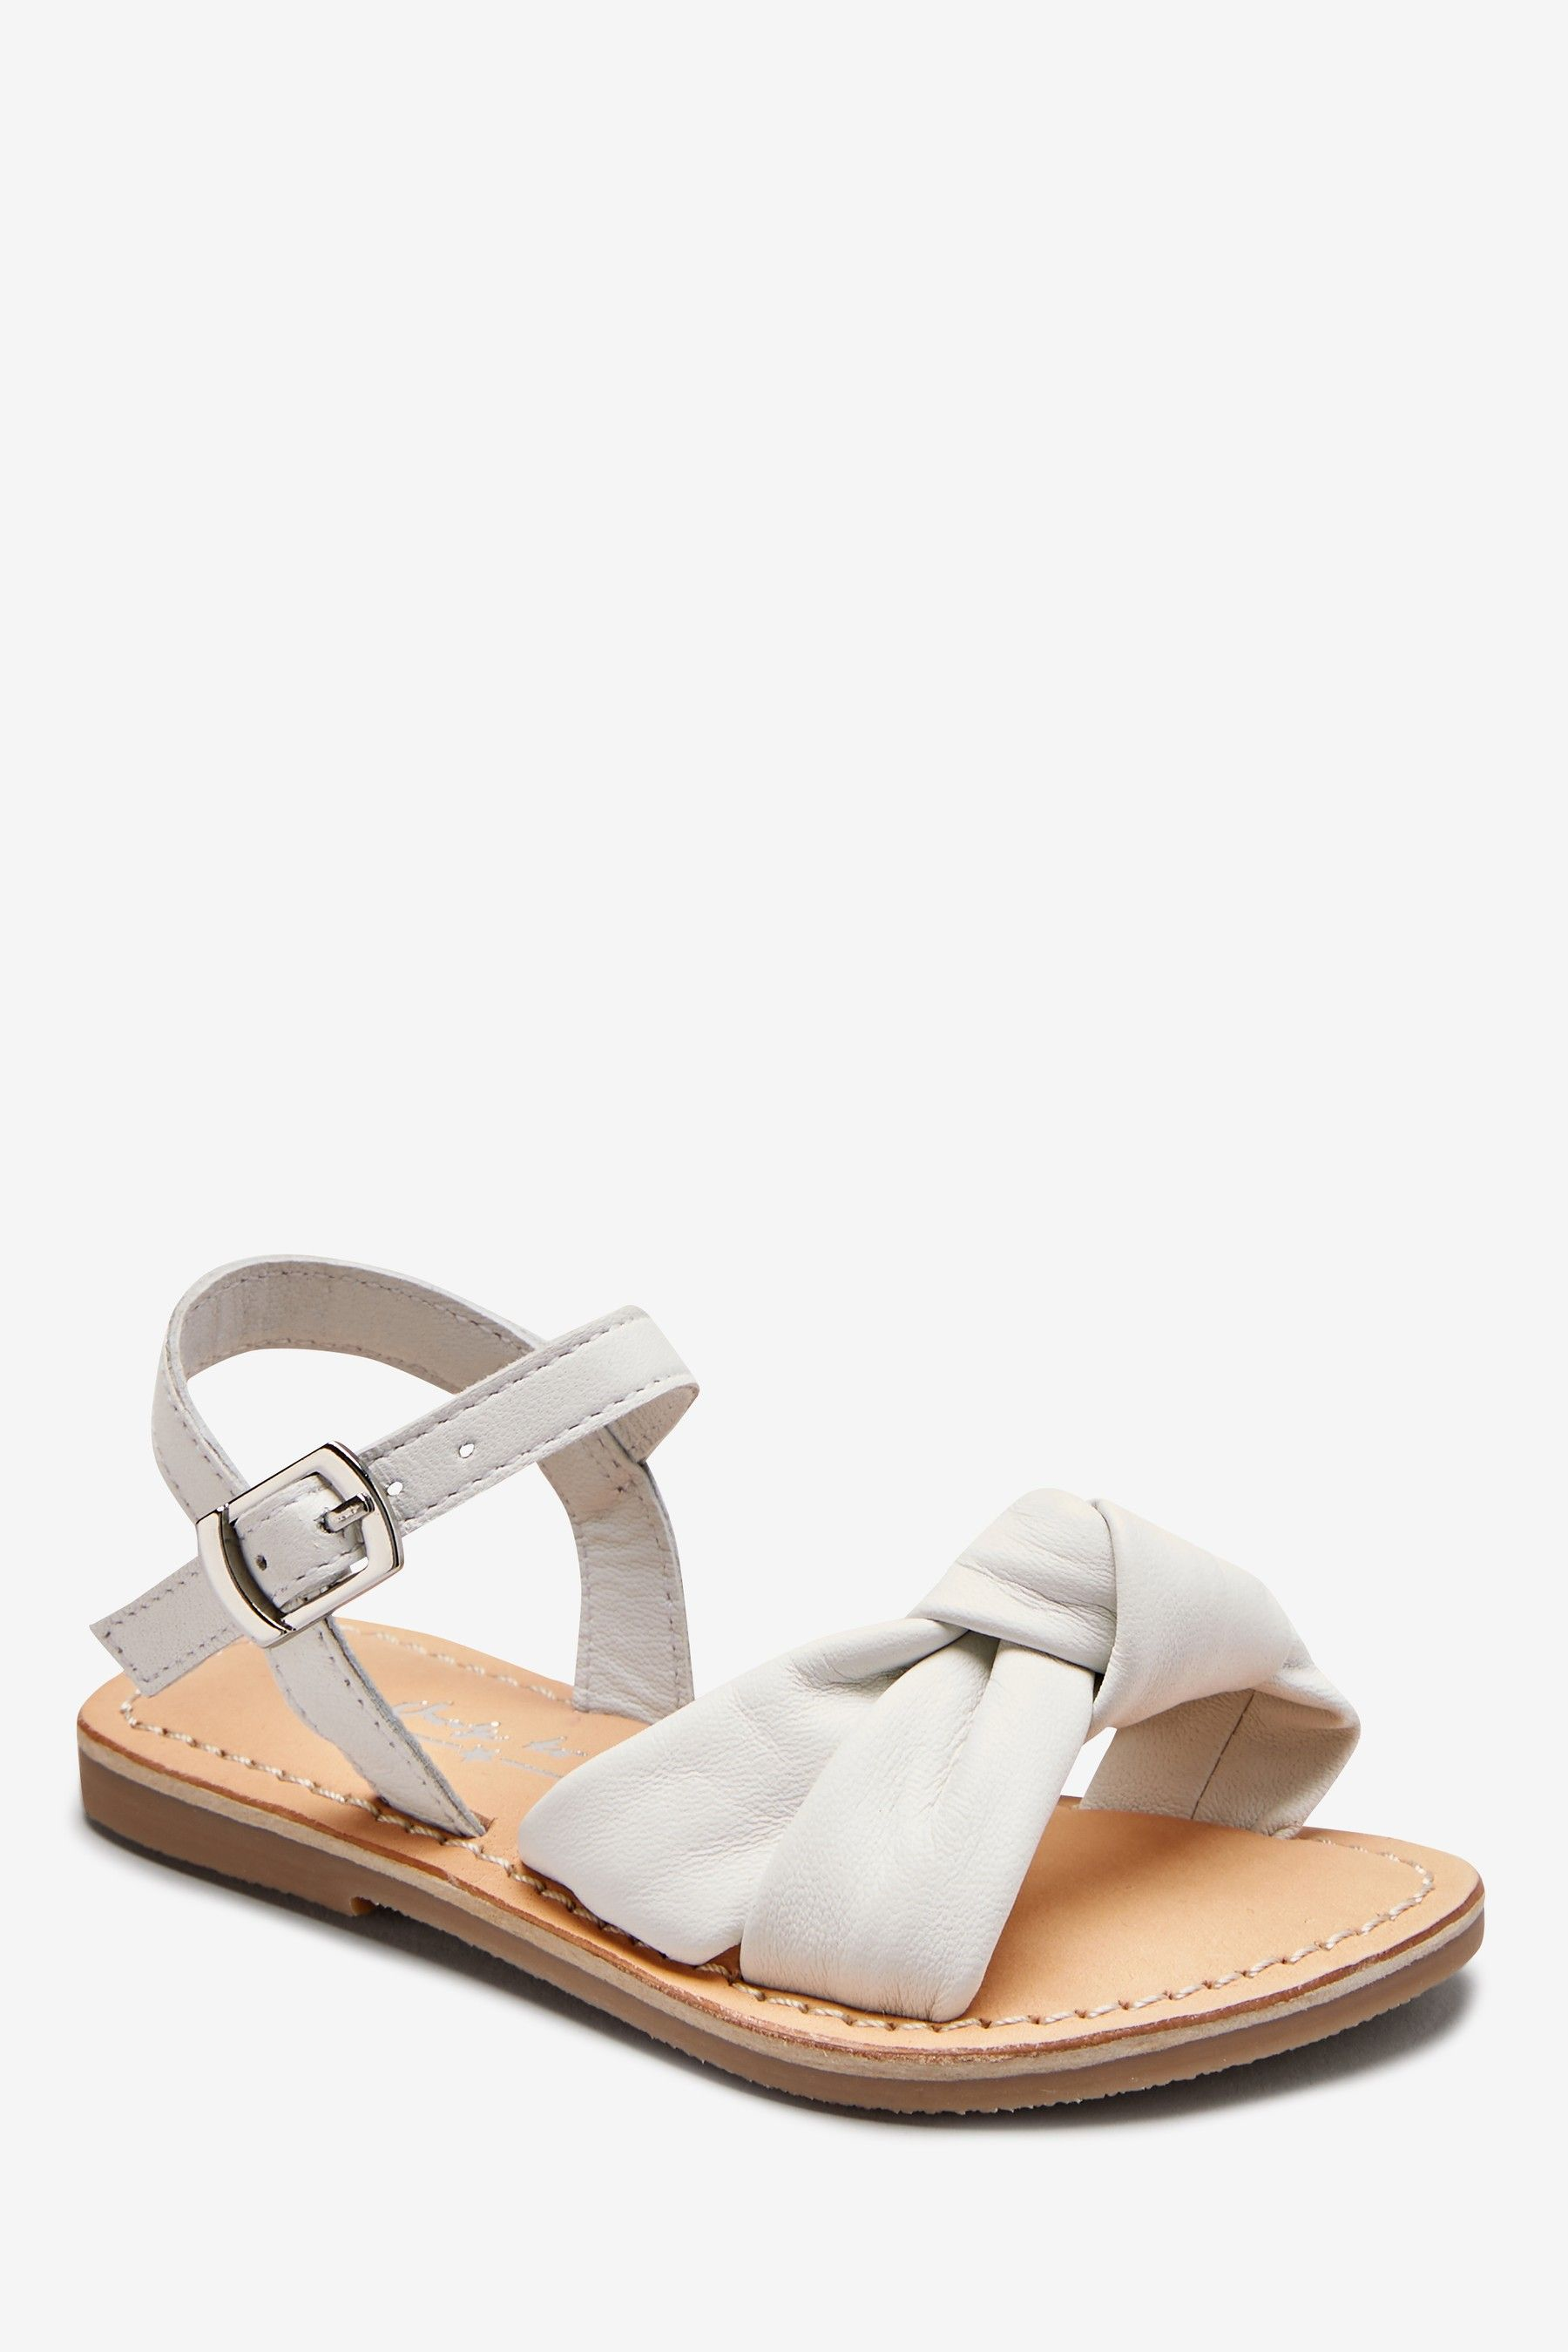 Girls Next White Leather Knot Sandals